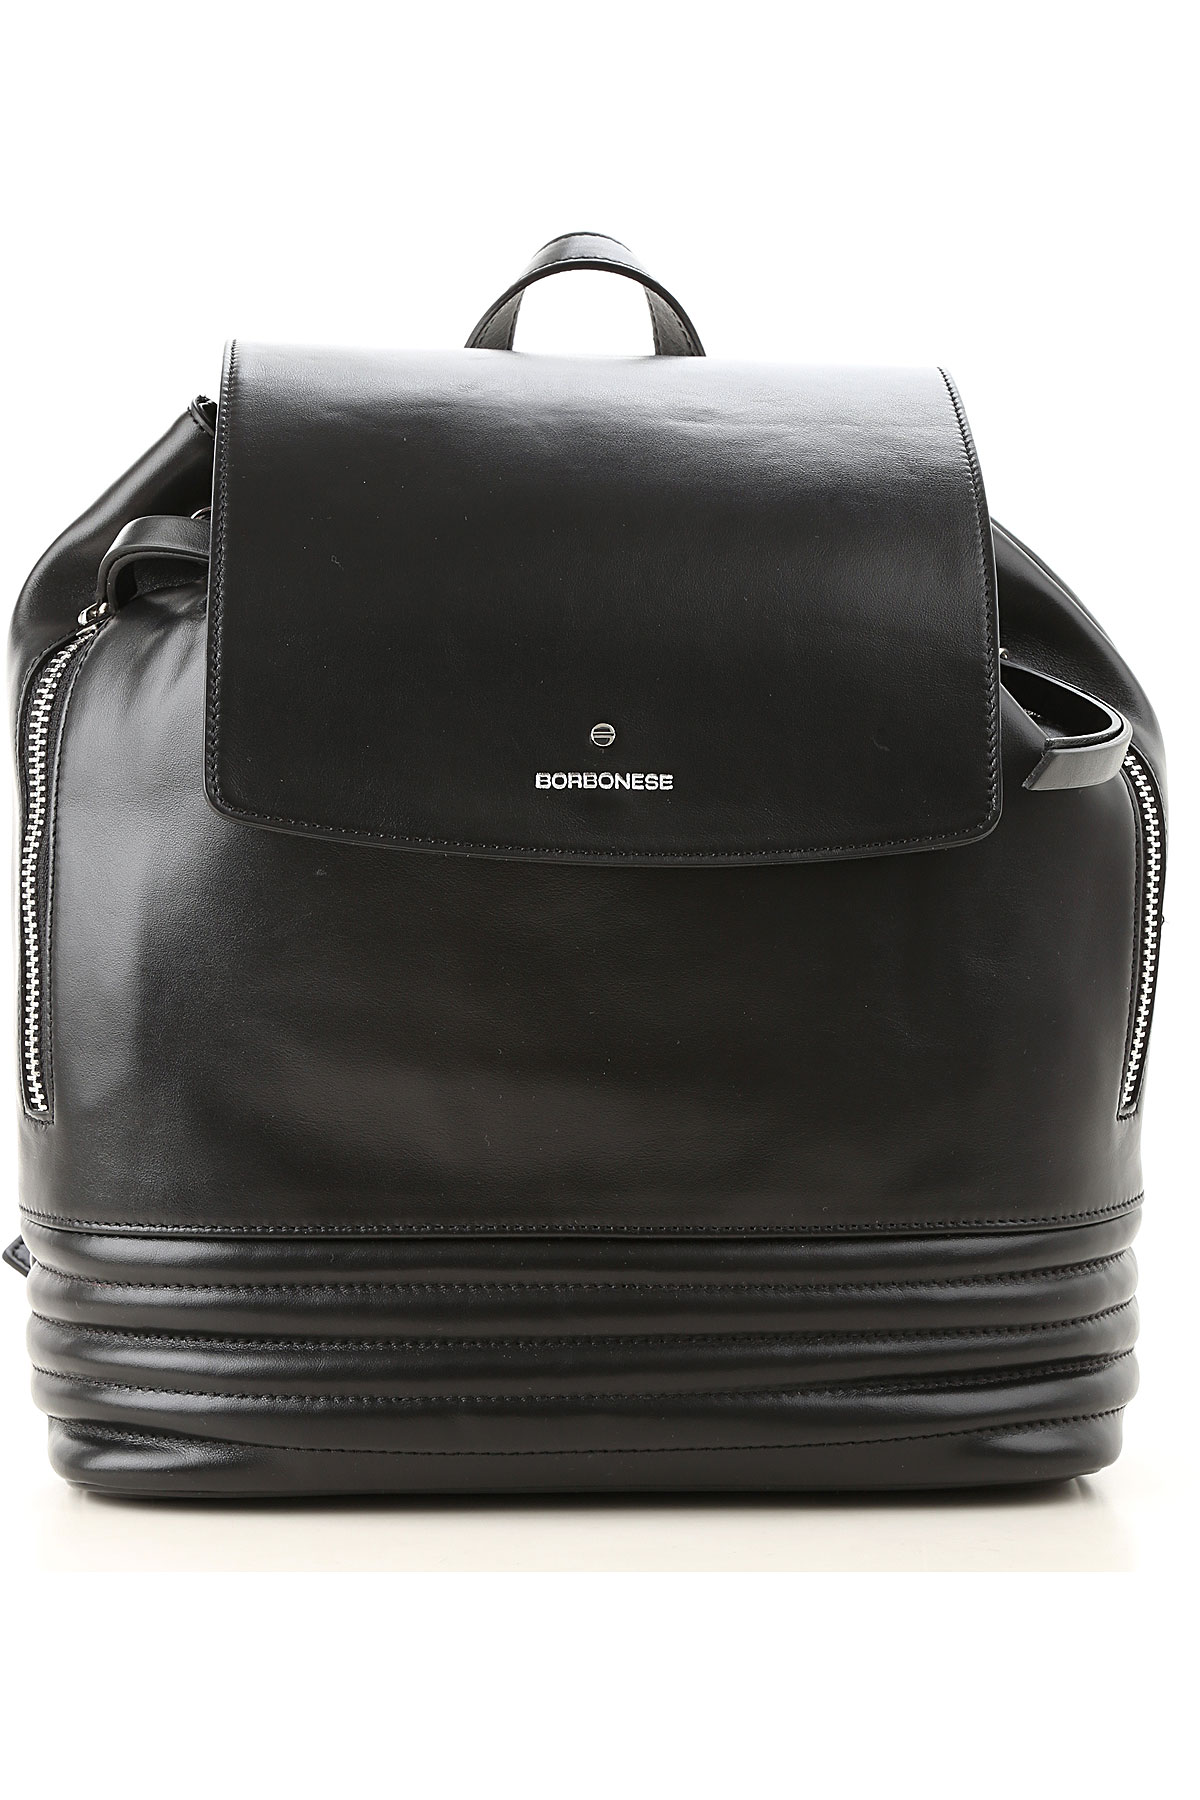 Borbonese Backpack for Women On Sale, Black, Leather, 2019